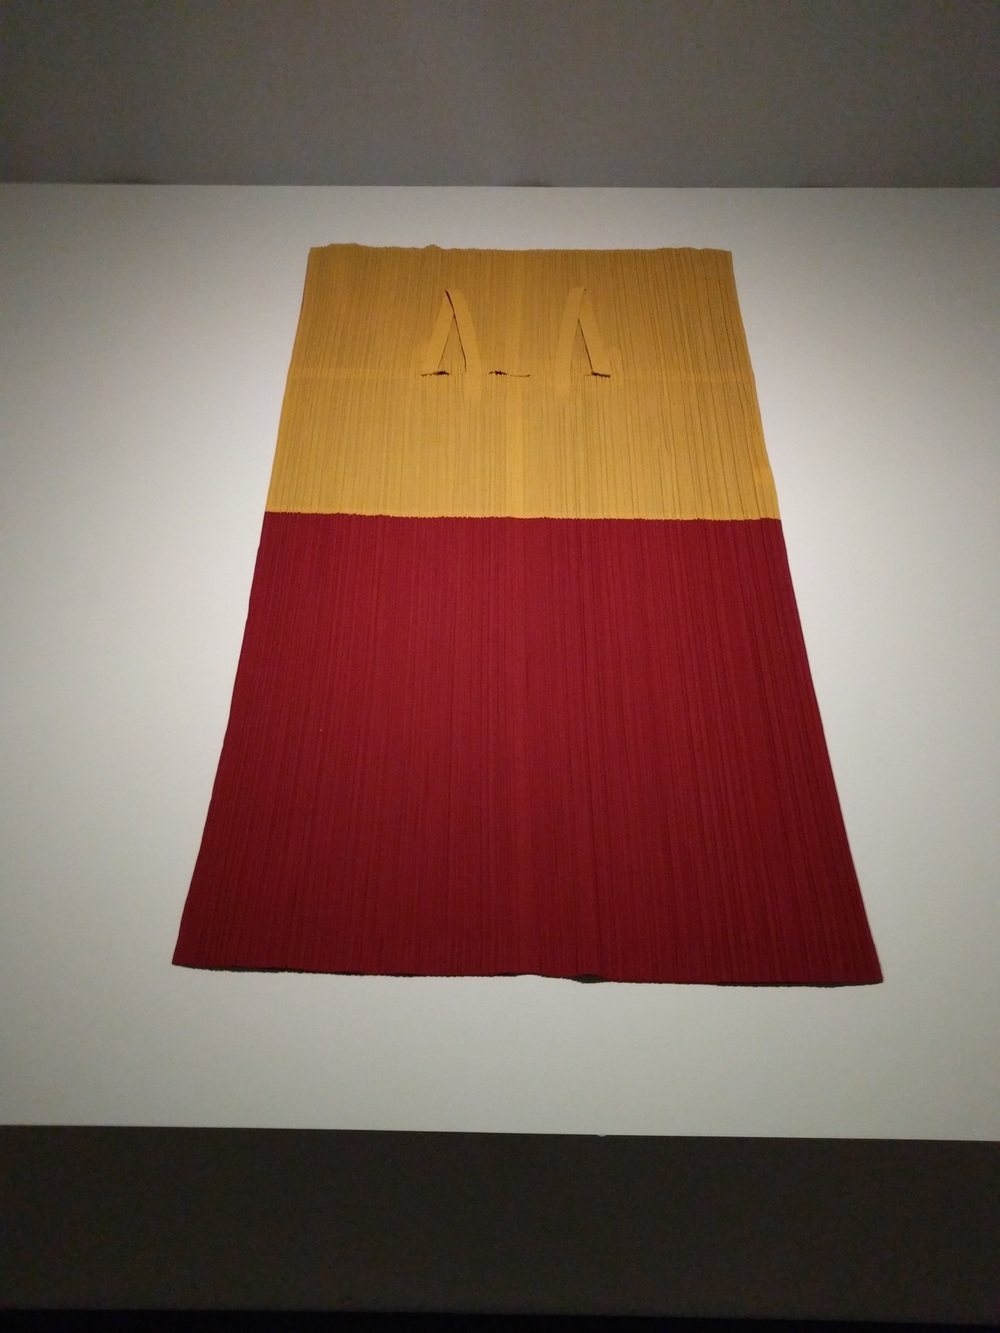 Same Miyake dress when laying flat